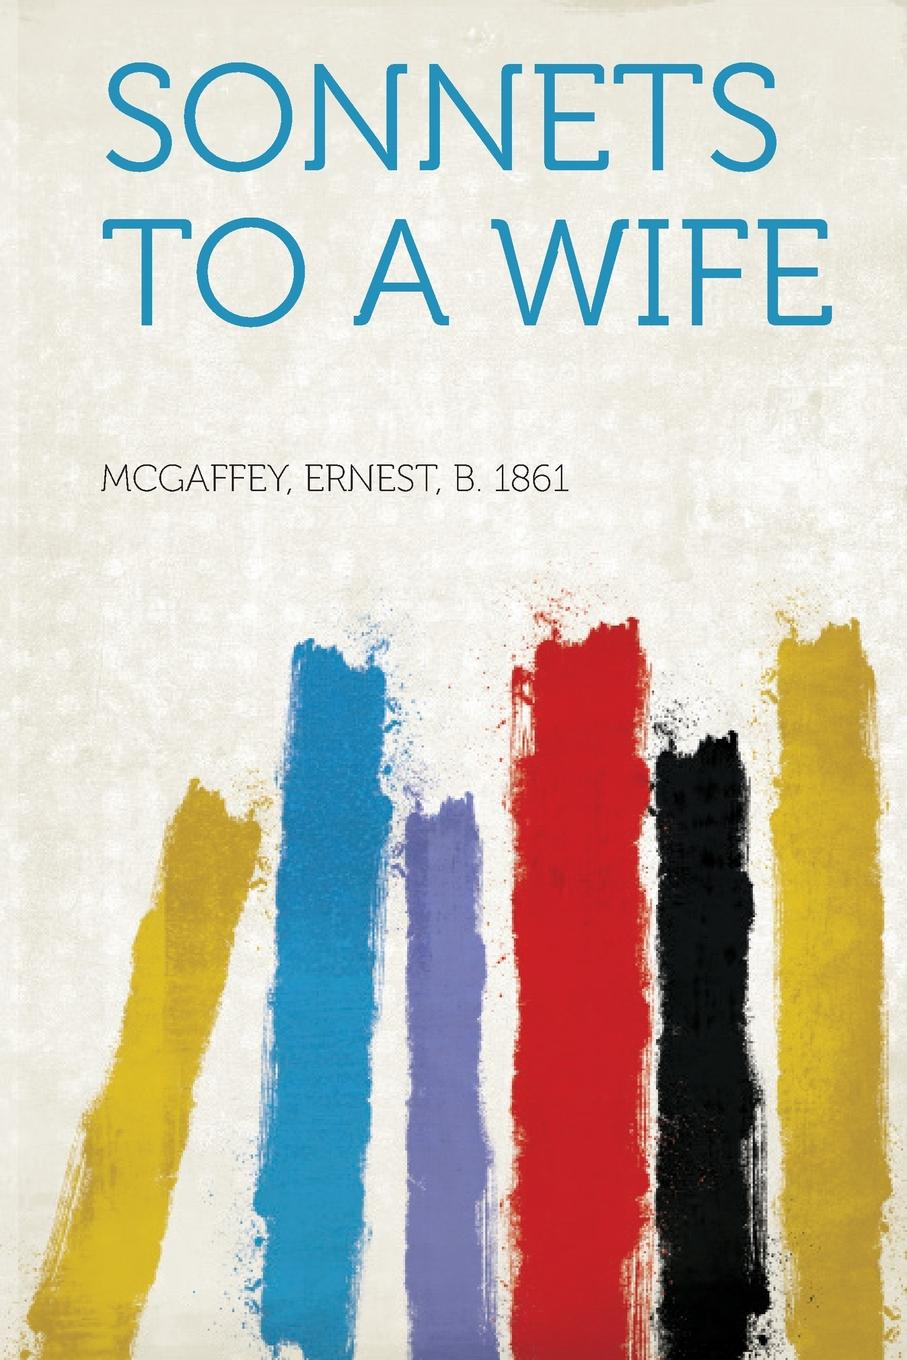 McGaffey Ernest B. 1861 Sonnets to a Wife